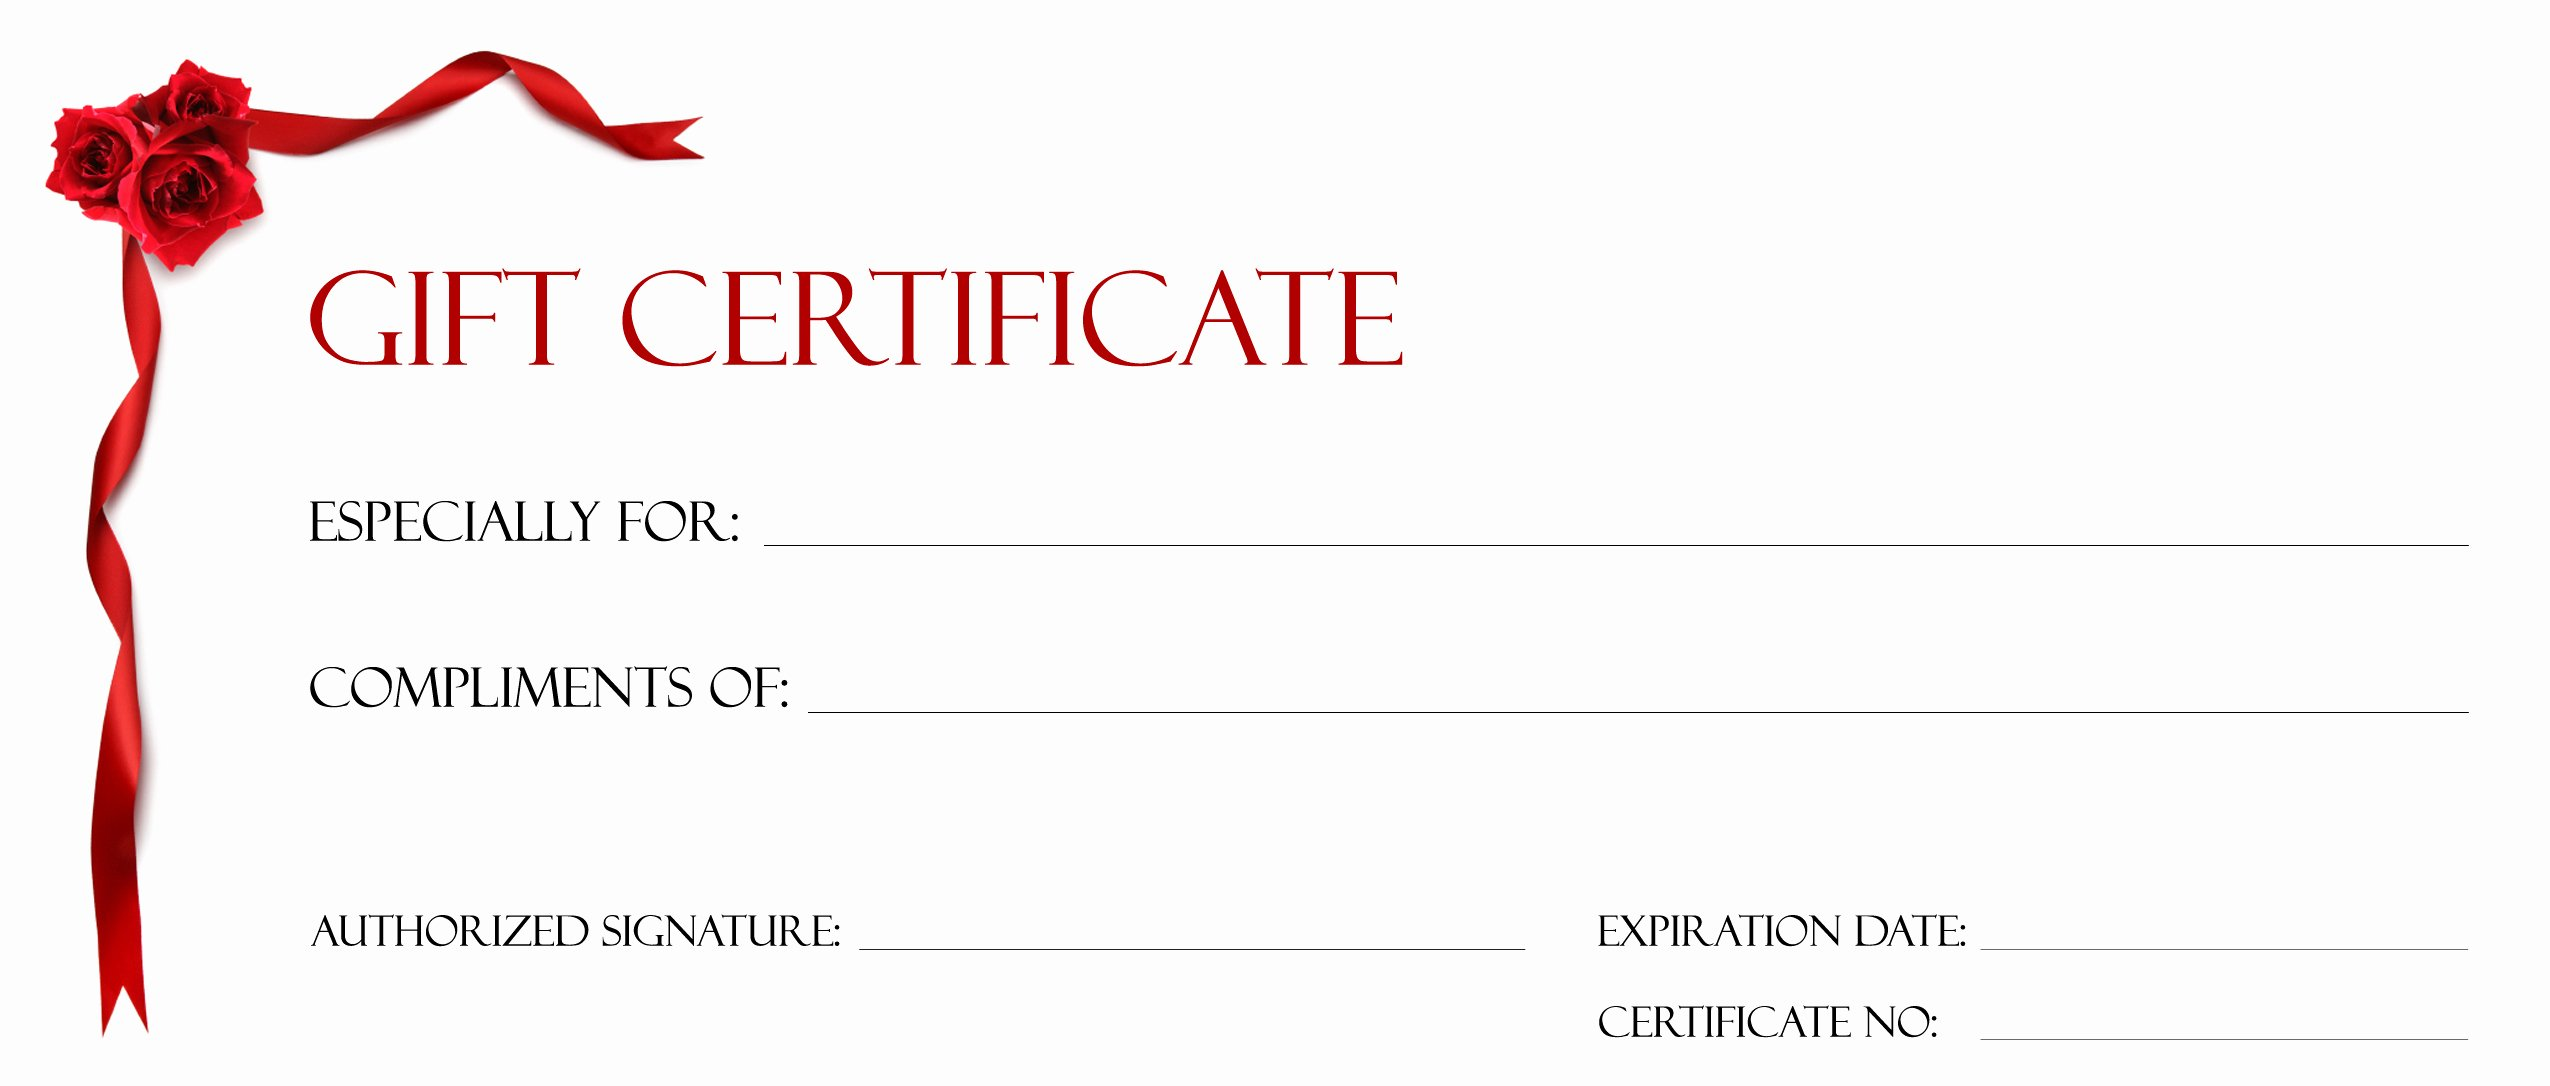 Certificate Template Google Docs Awesome 18 Certificate Templates Google Docs